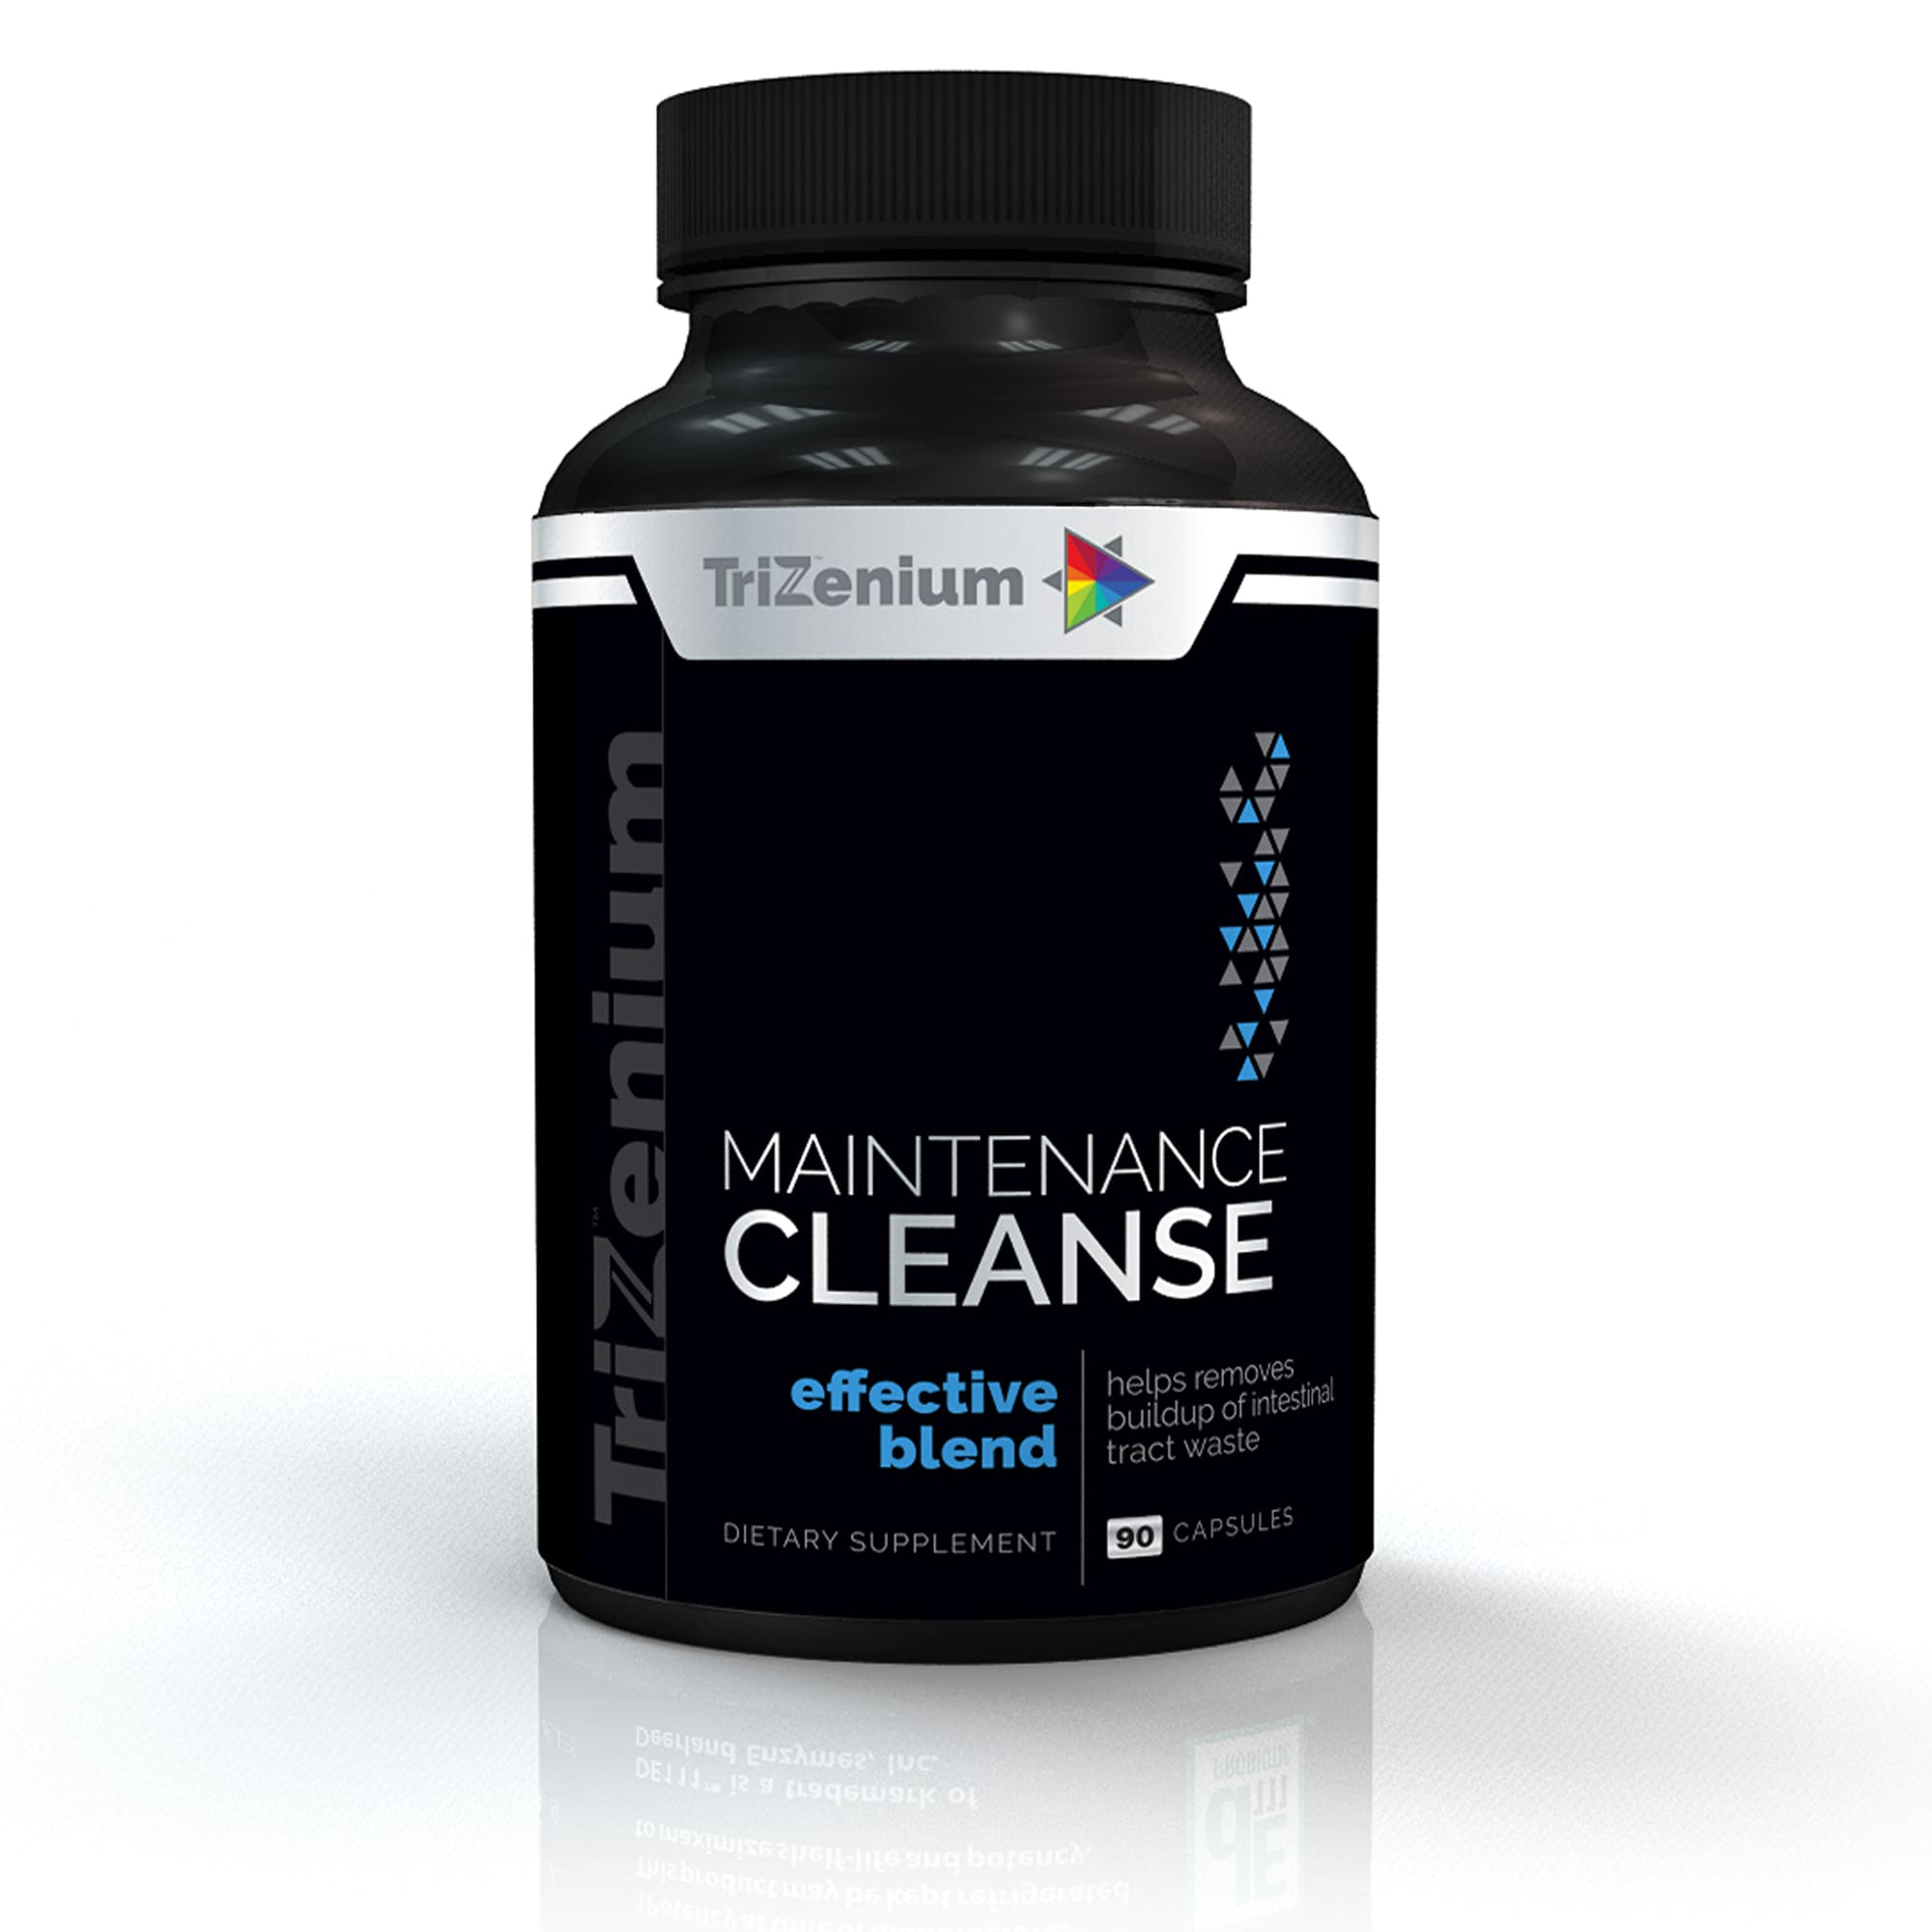 TriZenium Maintenance Cleanse (90 capsules)